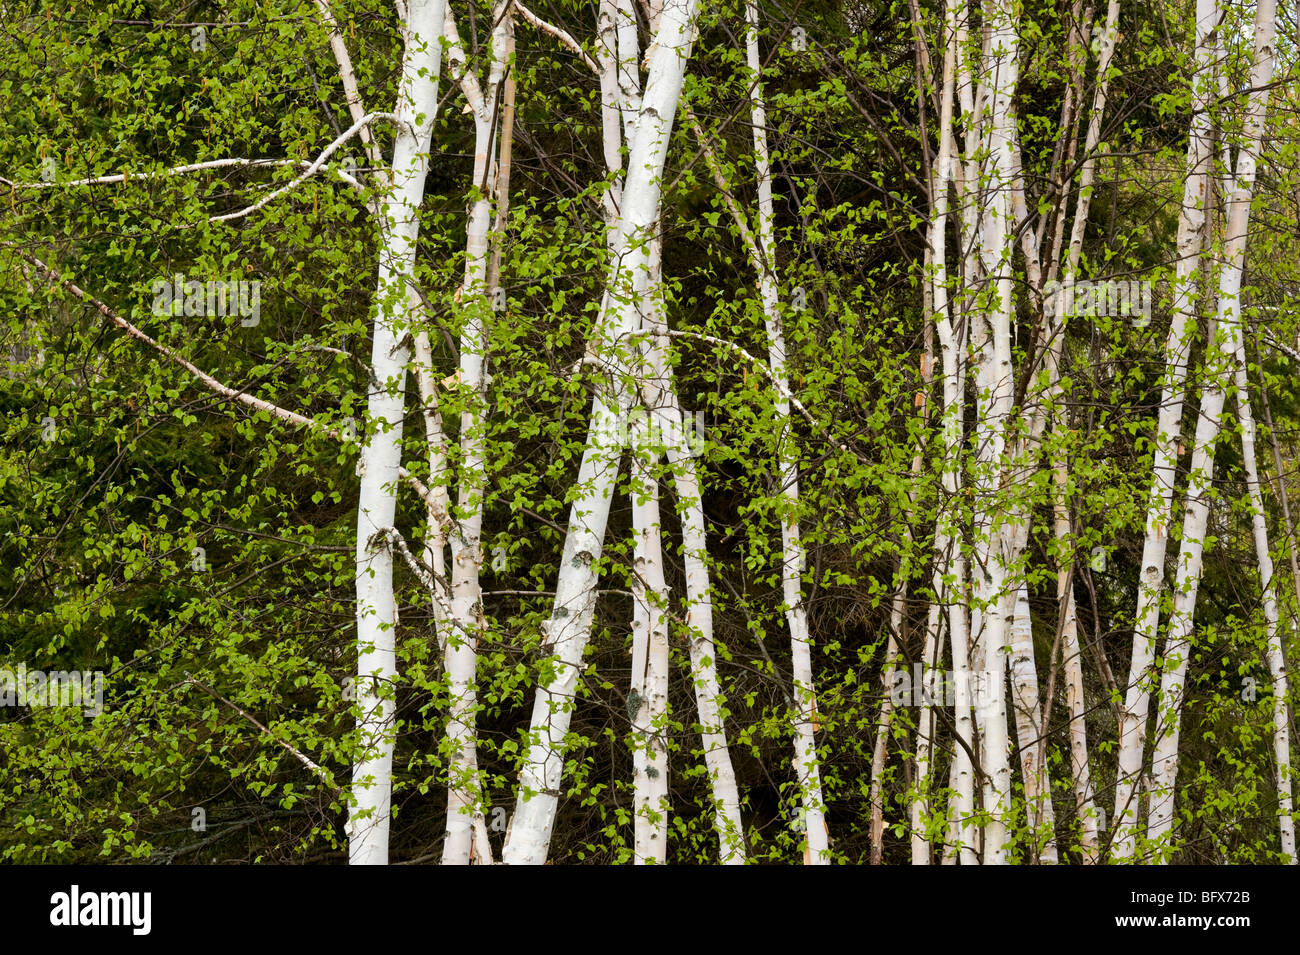 Birch tree trunks and beaverpond in front of large evergreen tree, Greater Sudbury, Ontario, Canada - Stock Image